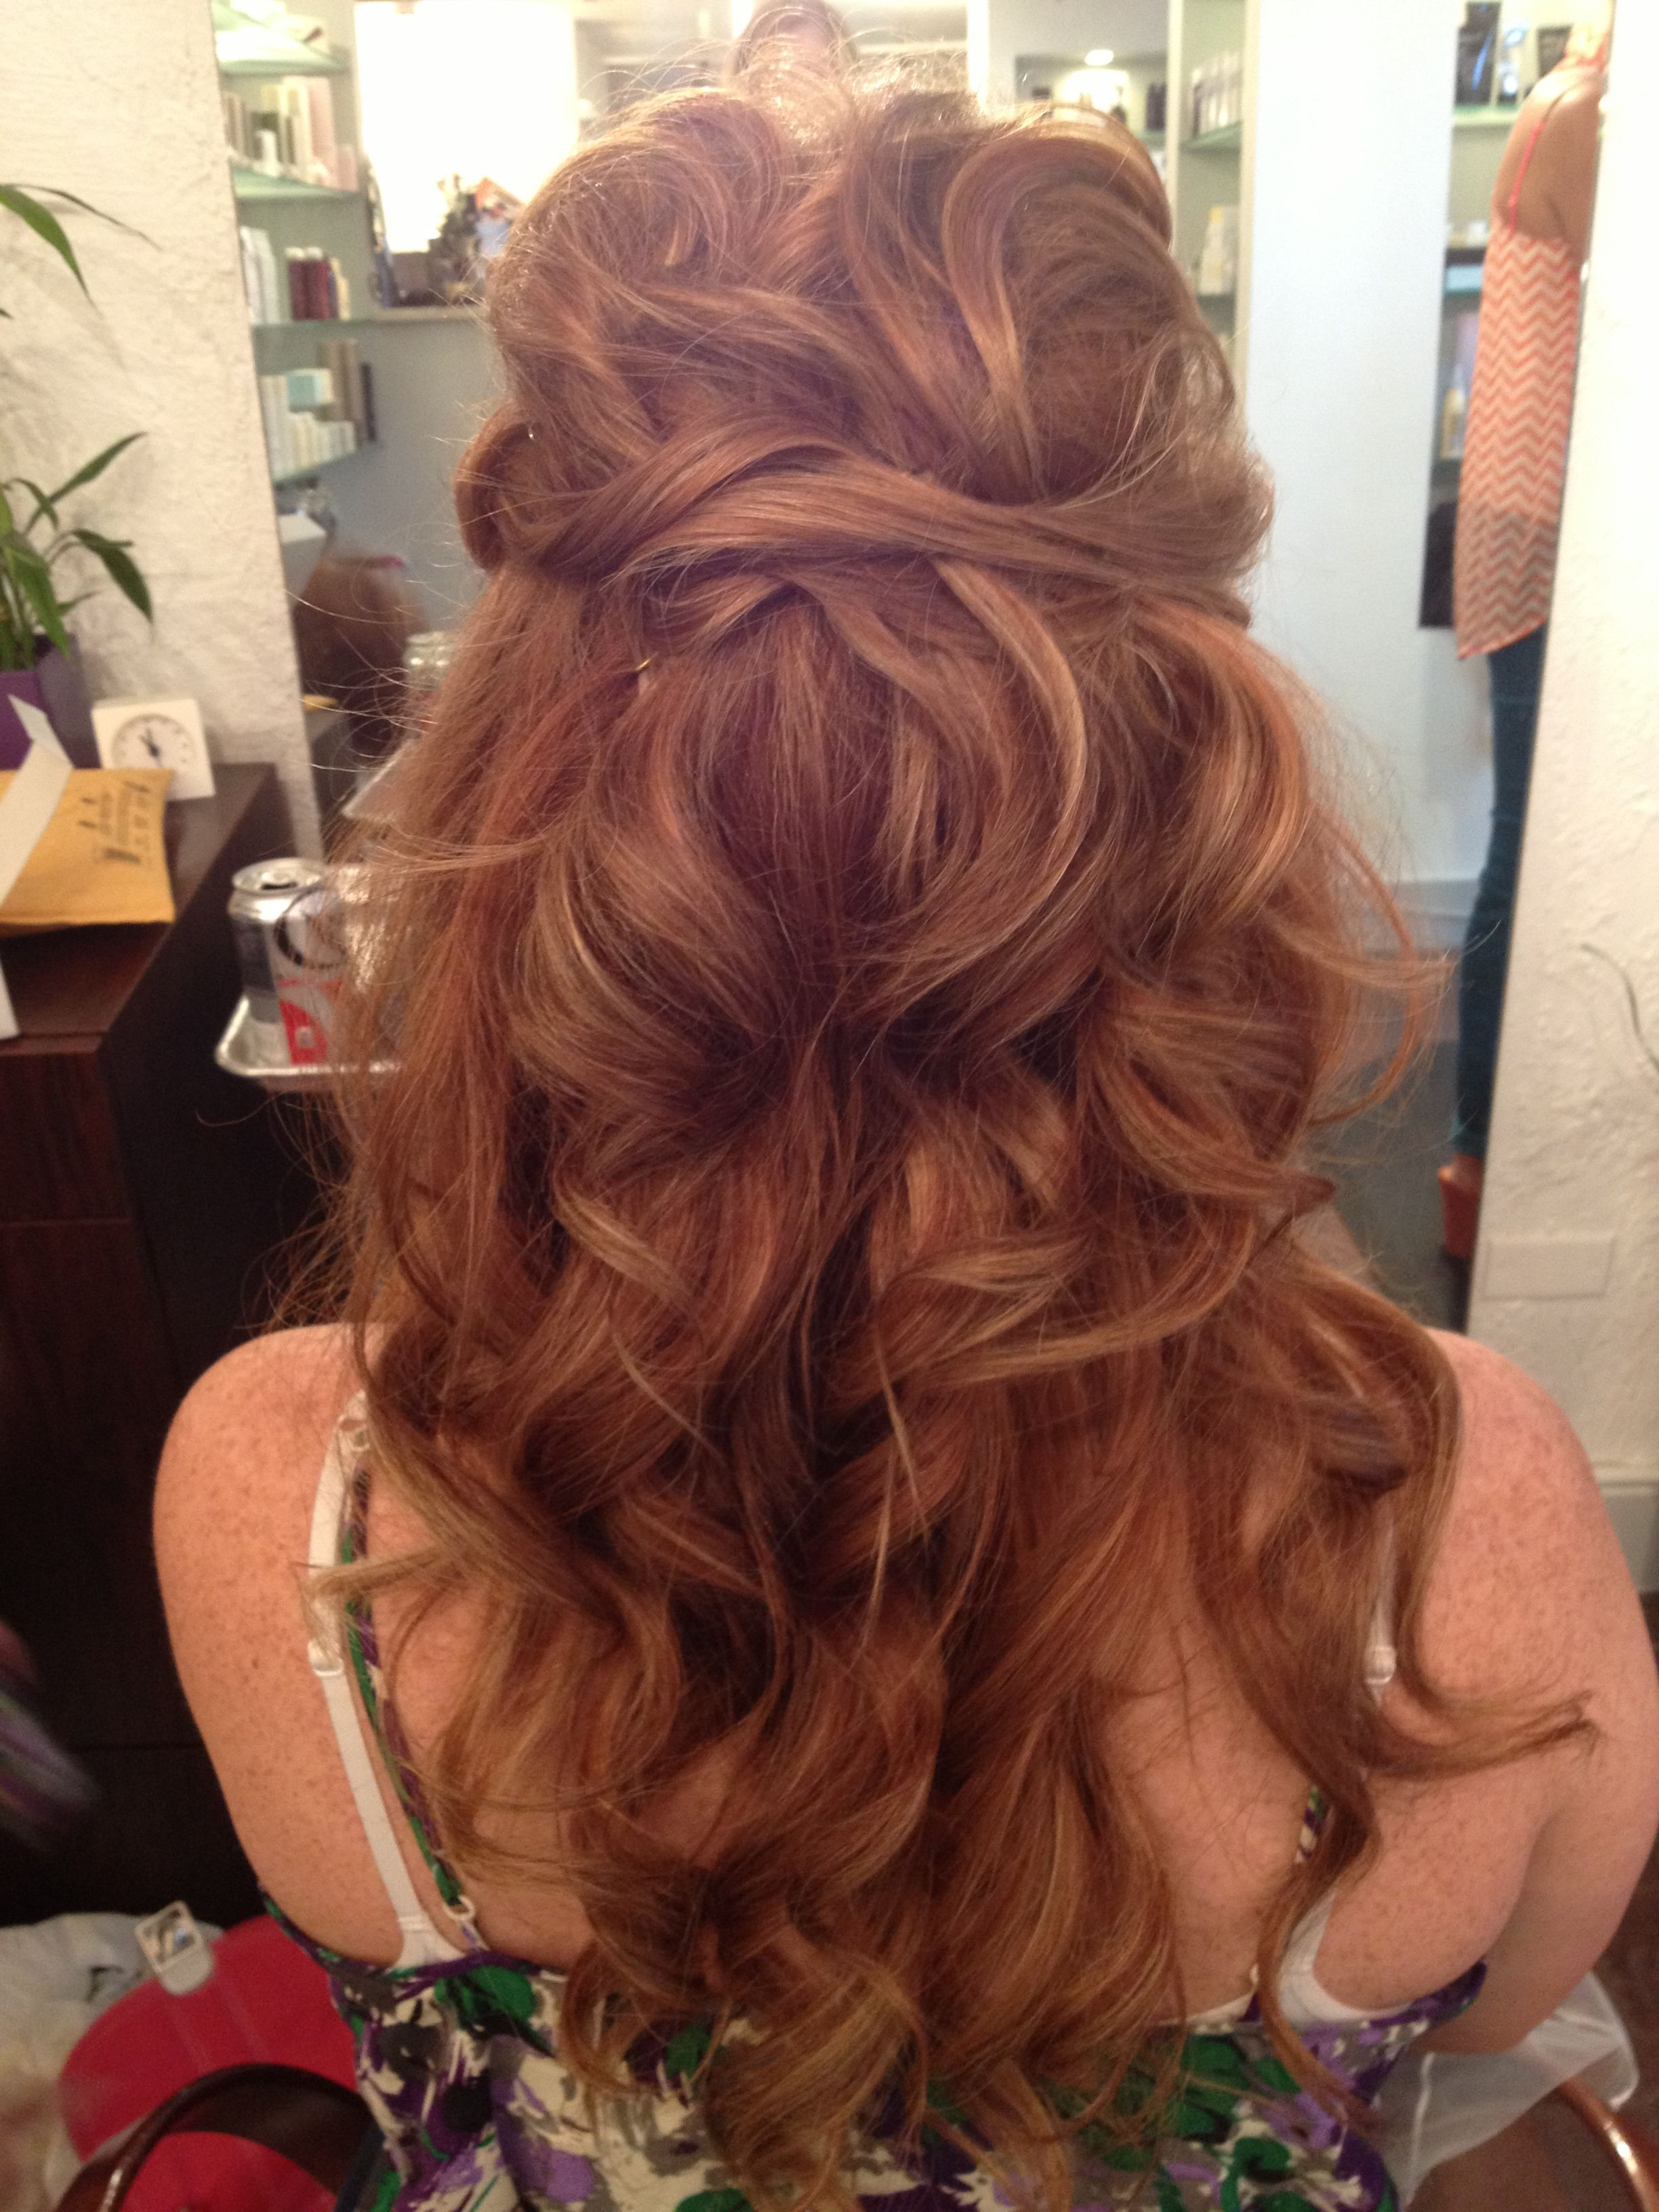 Wedding Hairstyles (Gallery 12 of 20)